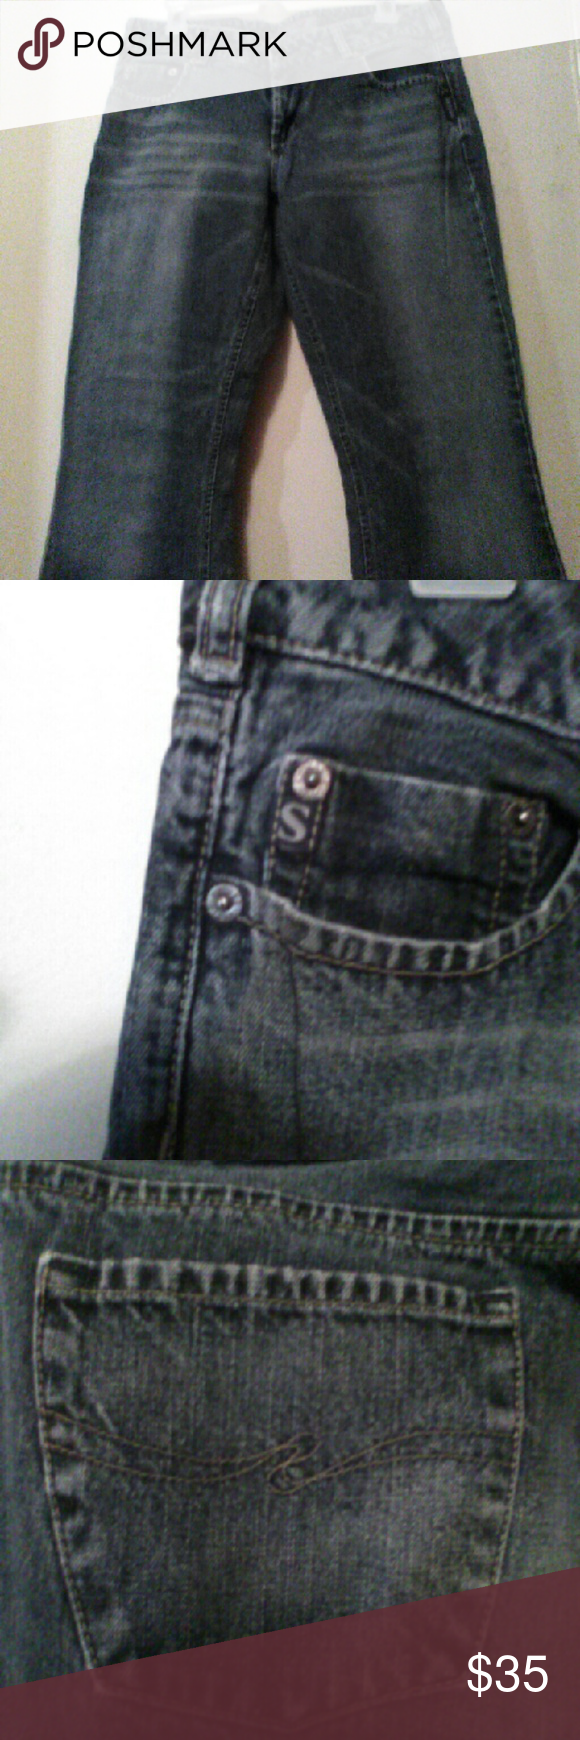 Silver jeans In good condition only worn once Silver Jeans Jeans Boot Cut